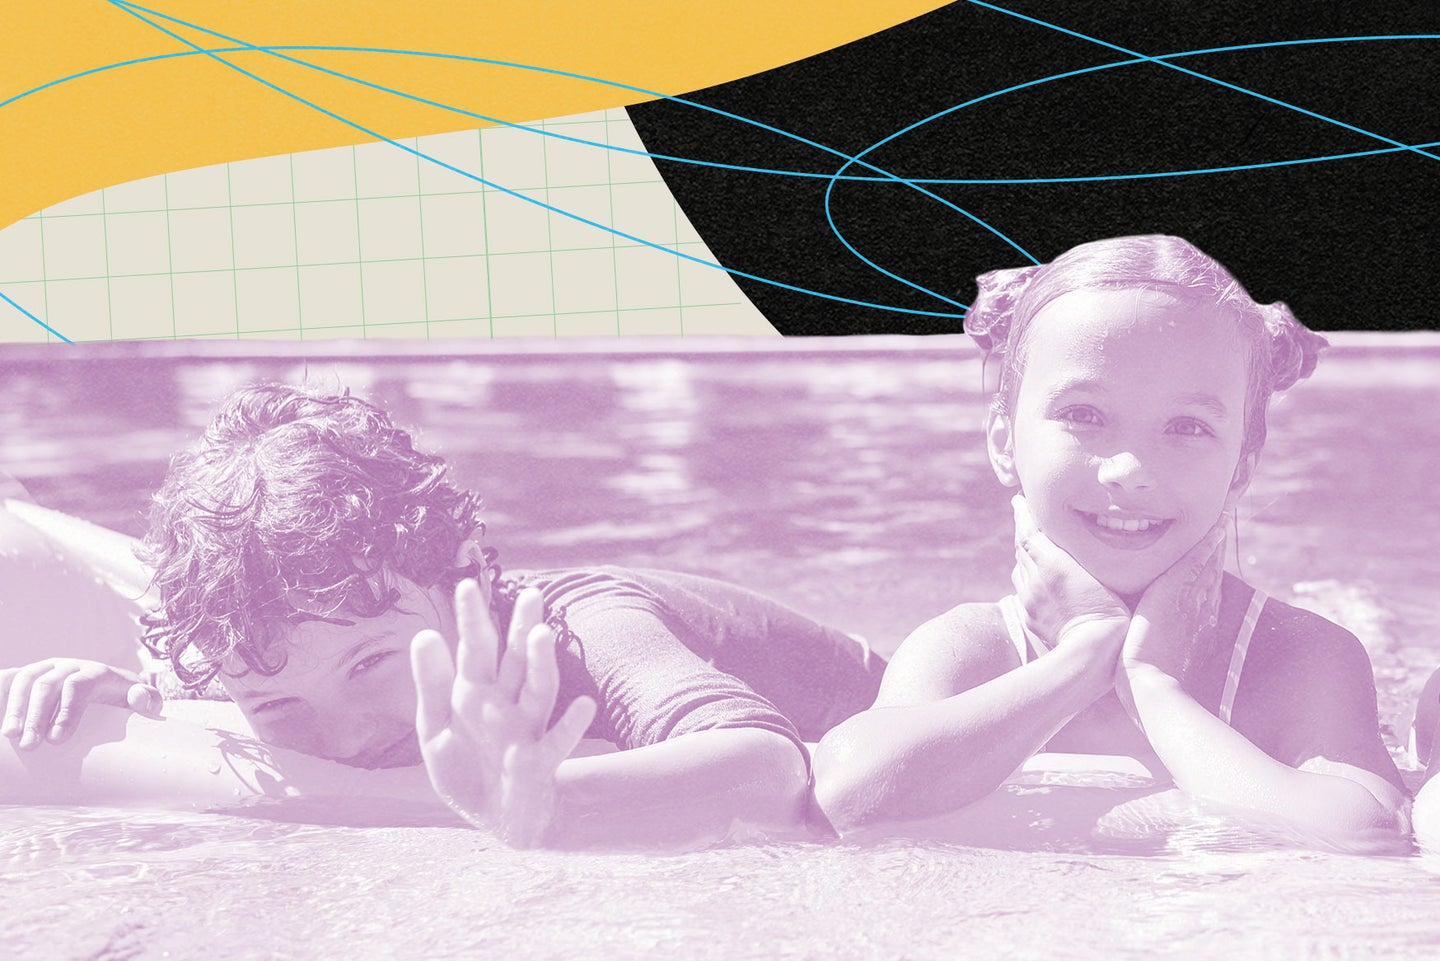 two children swimming on a beach